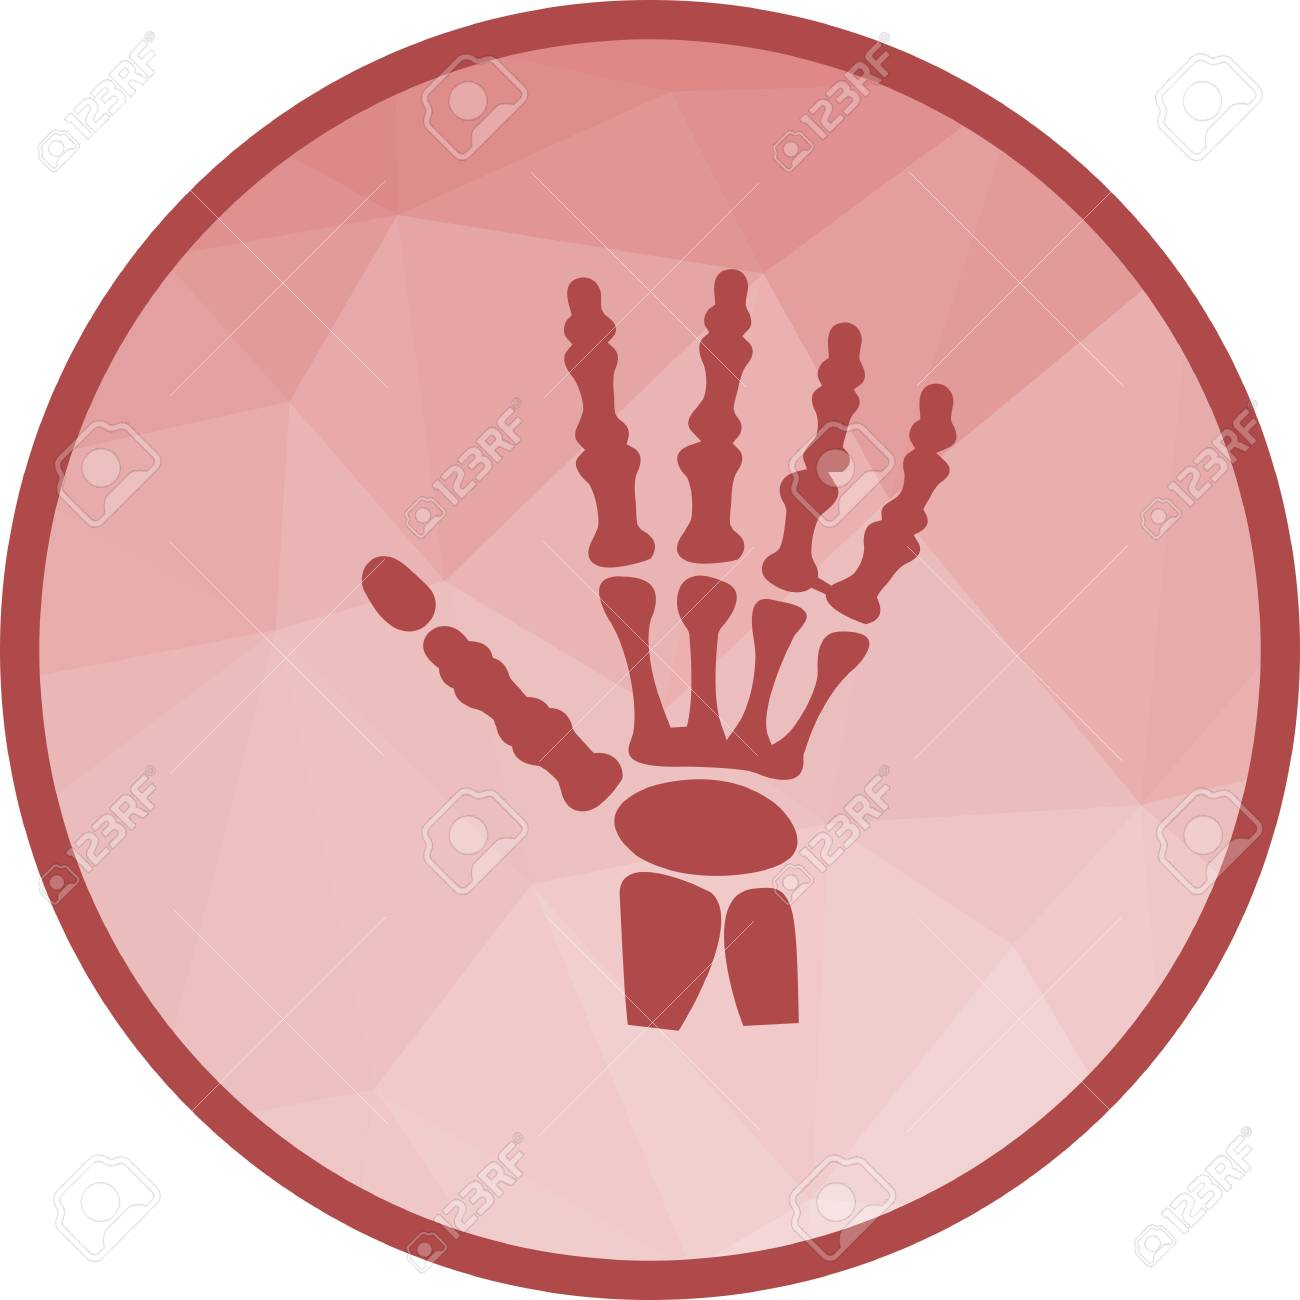 Hand, fingers, body icon vector image  Can also be used for human